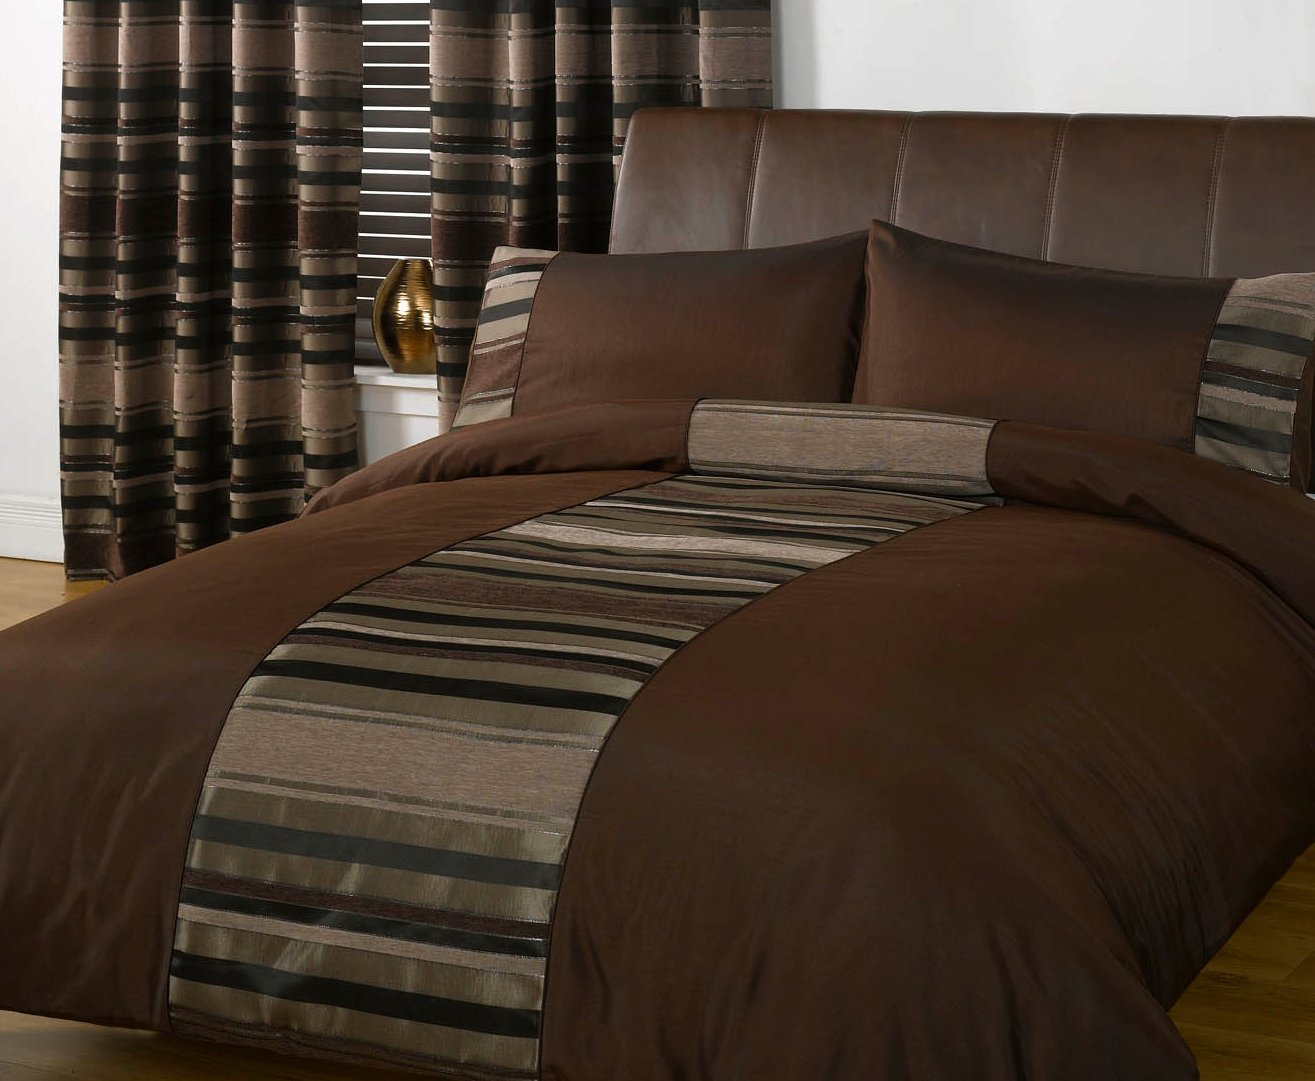 duvet dp runner cover viceroybedding brown amazon uk super chocolate king size set staten and pillowcases piece home bed kitchen co cushion